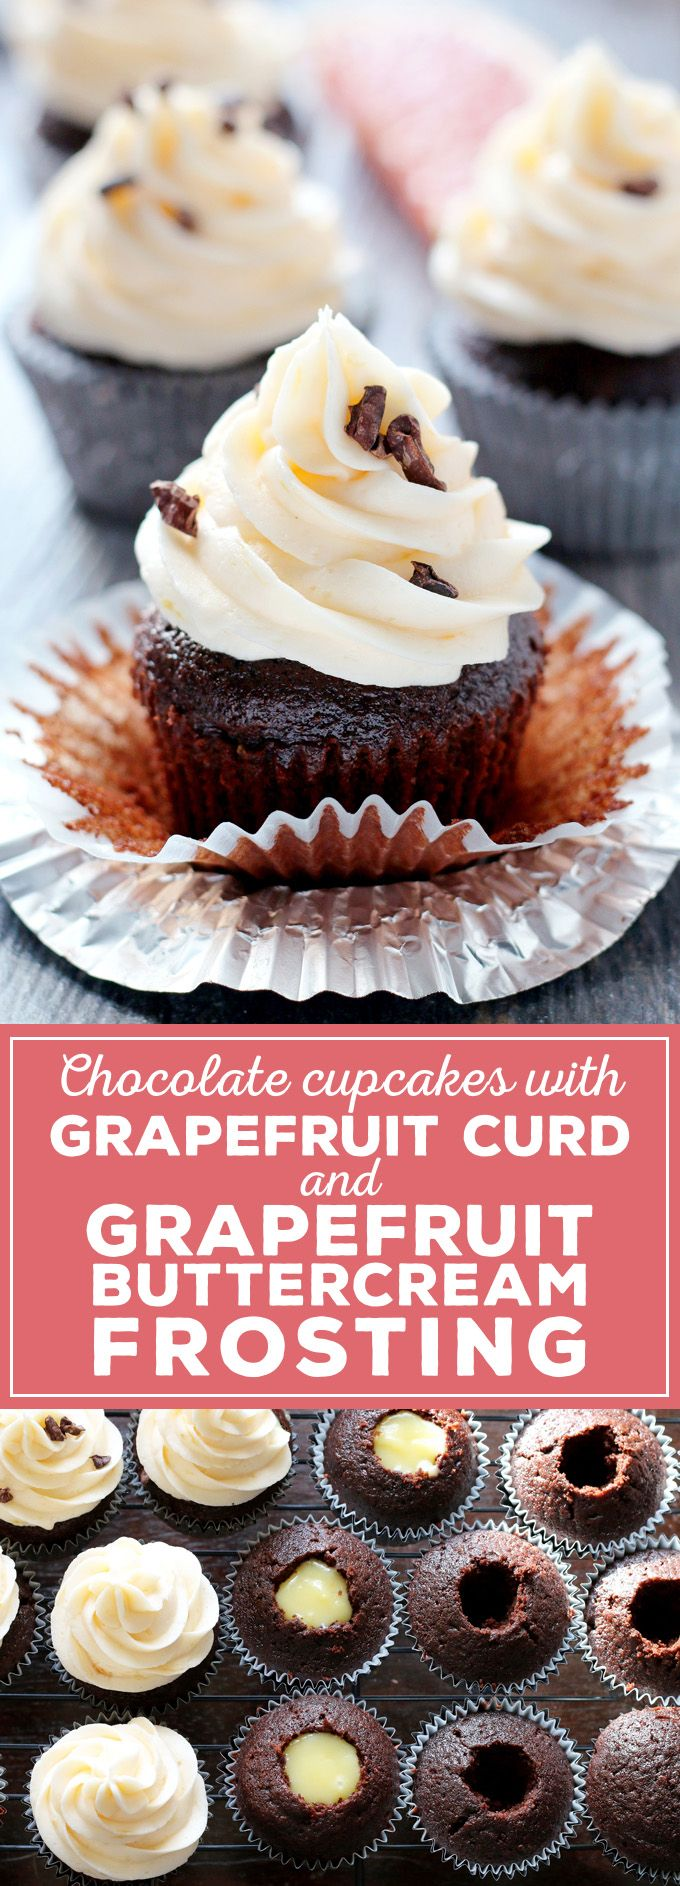 Grapefruit curd and grapefruit buttercream frosting are delicious when ...